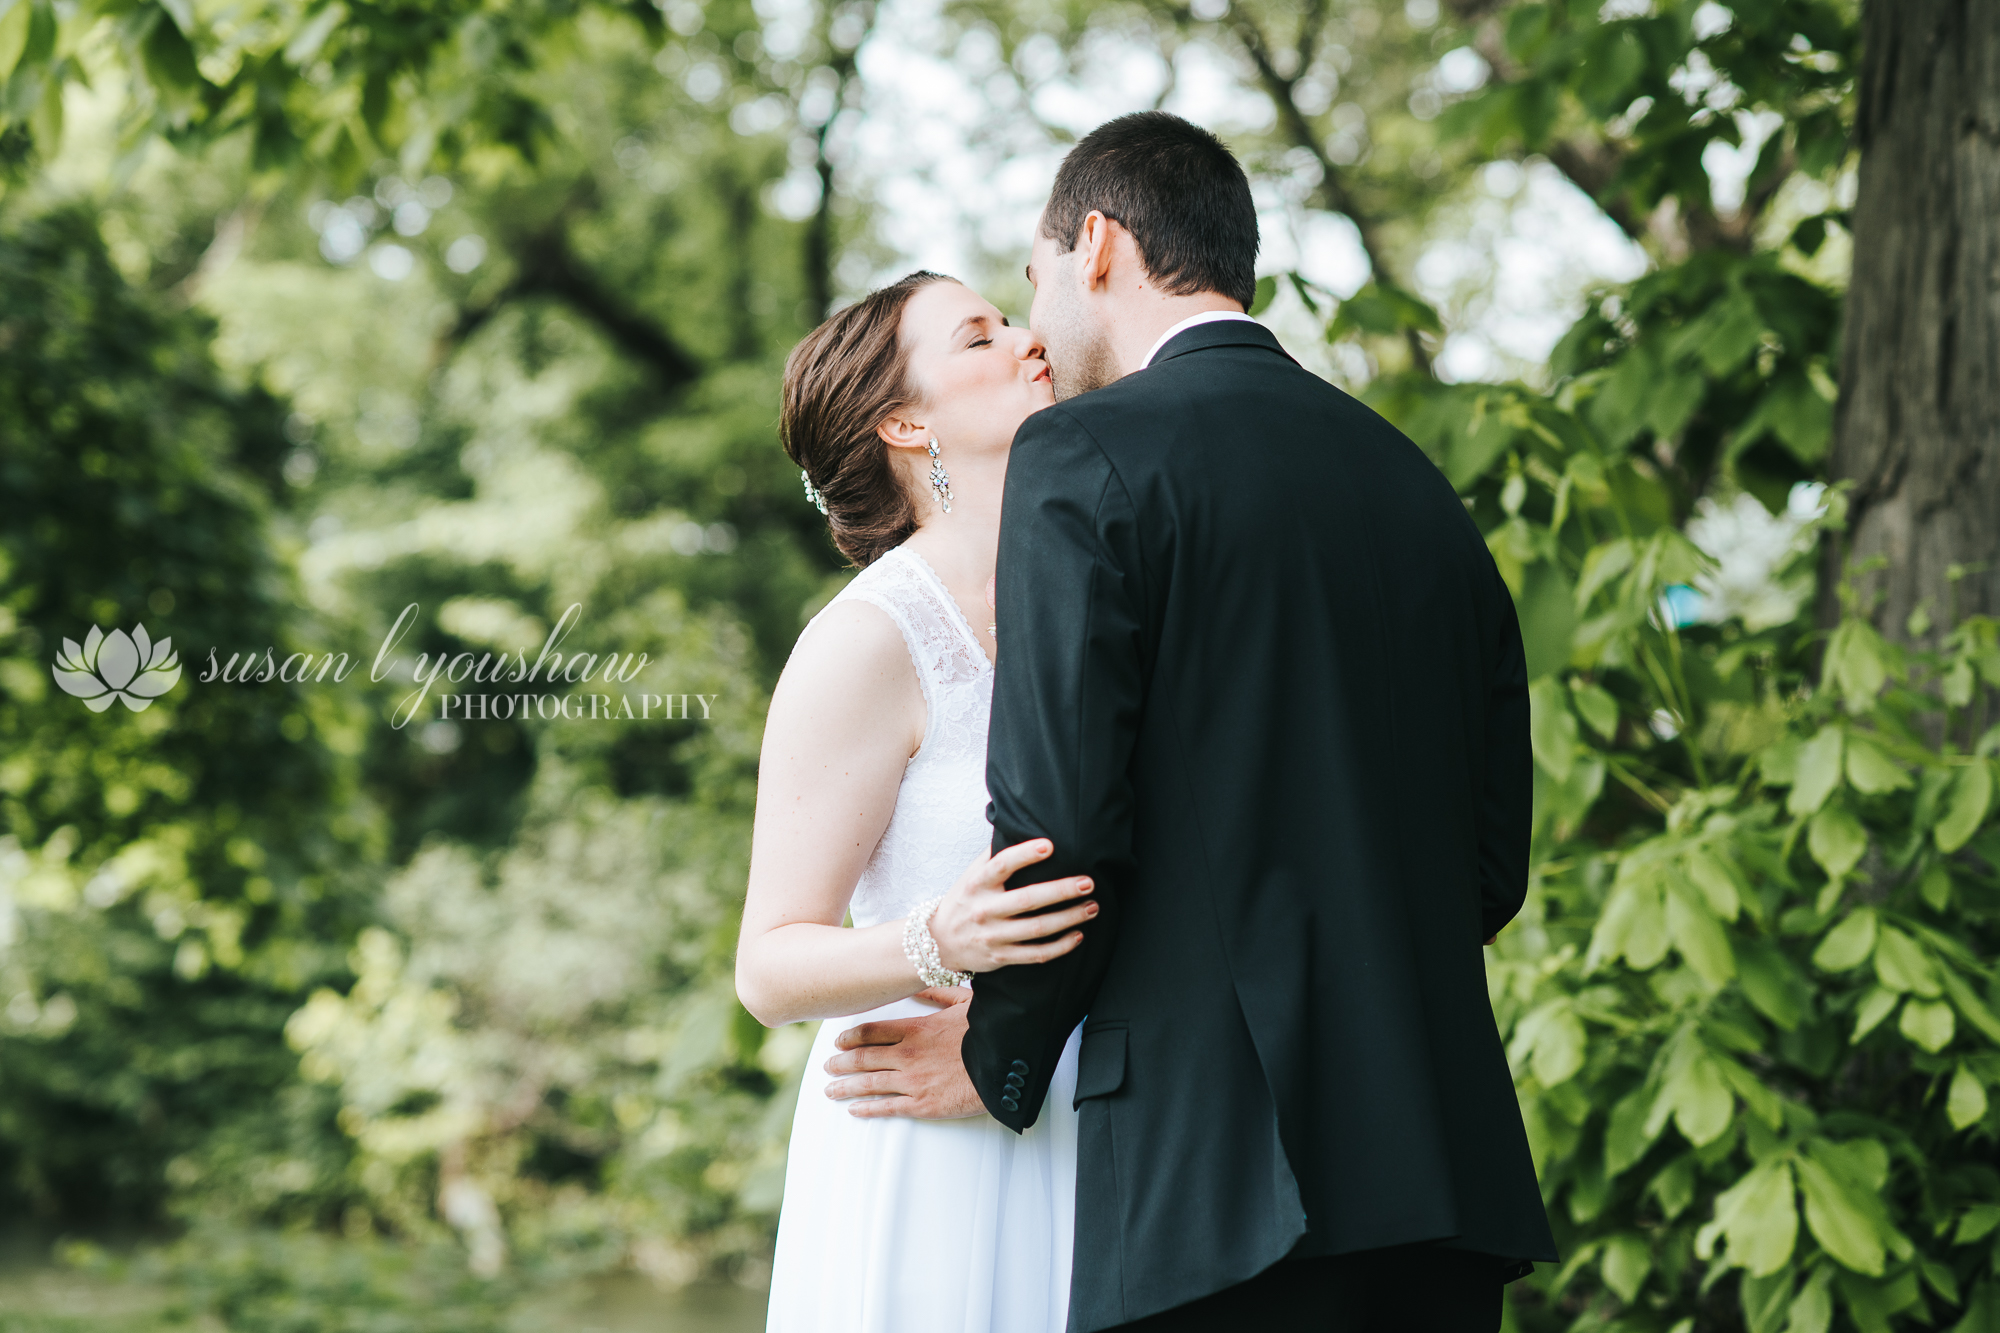 Adena and  Erik Wedding 05-17-2019 SLY Photography-20.jpg